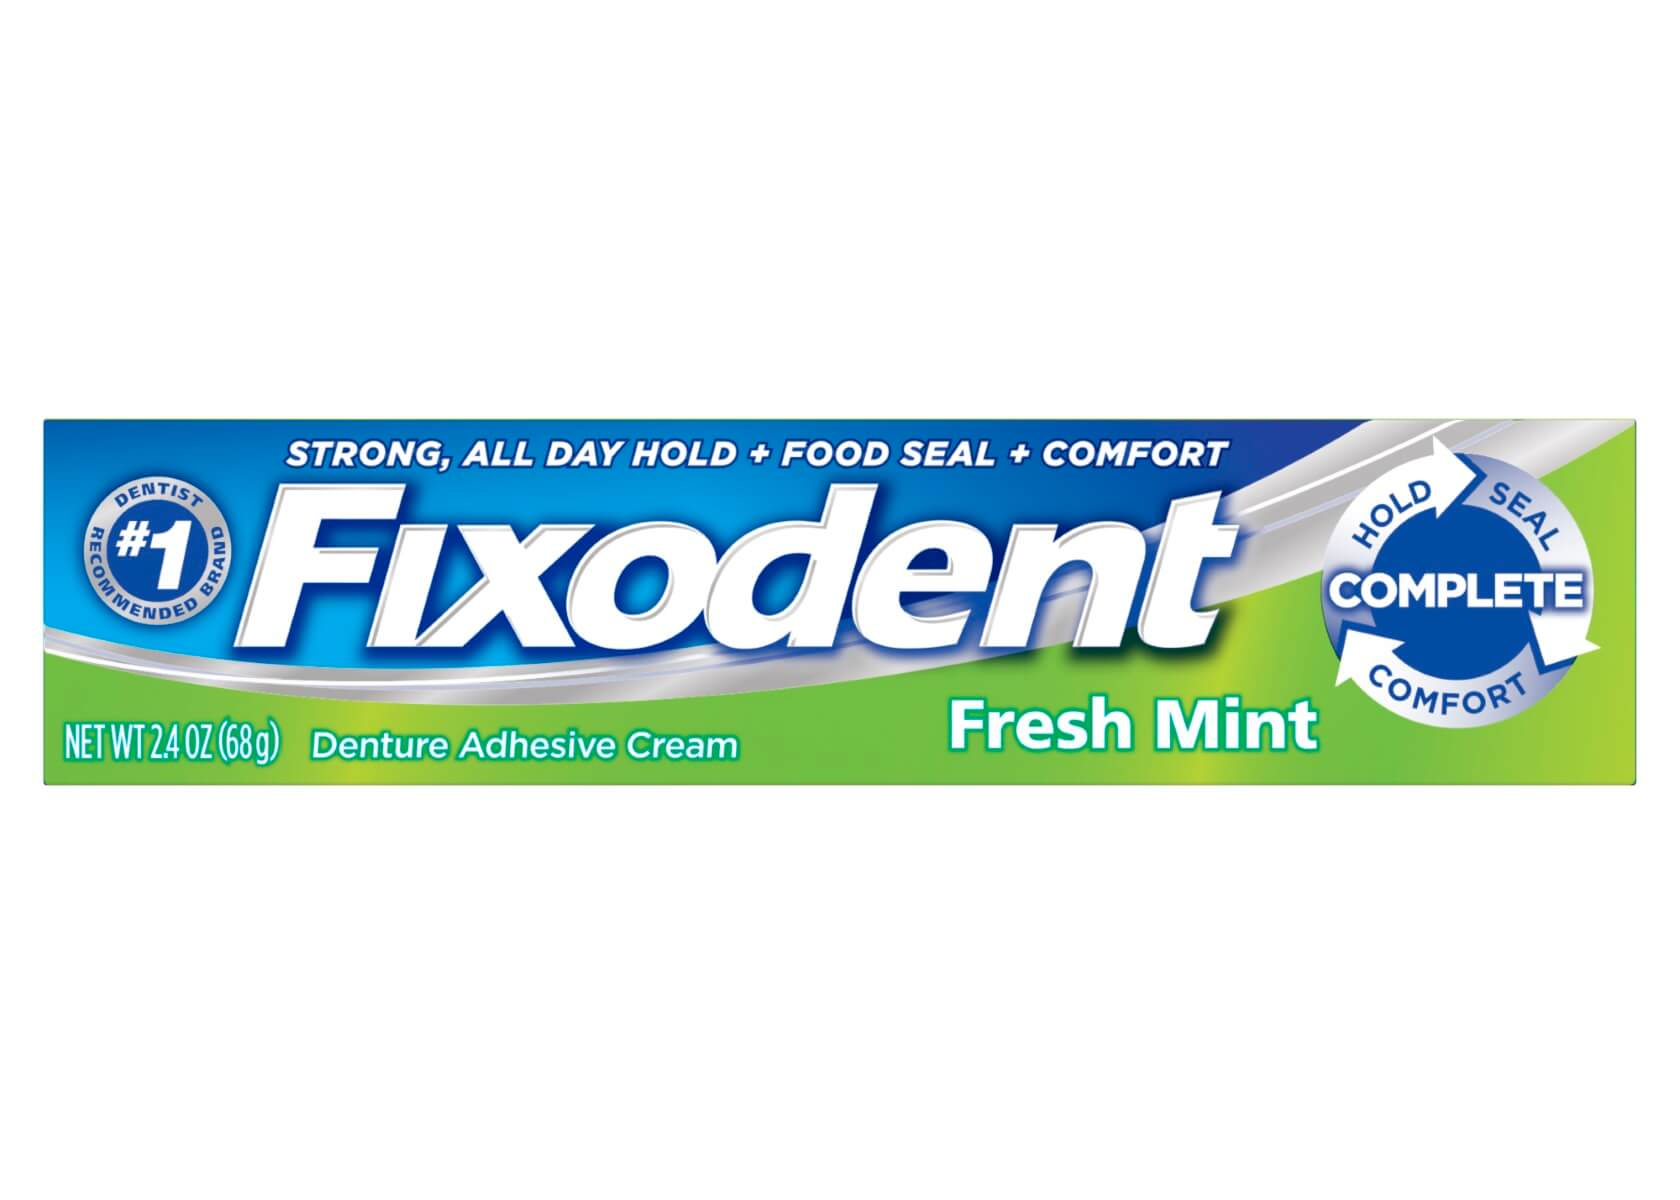 Packshot of the Fixodent Complete Fresh Mint denture adhesive, with dark blue and green packaging.